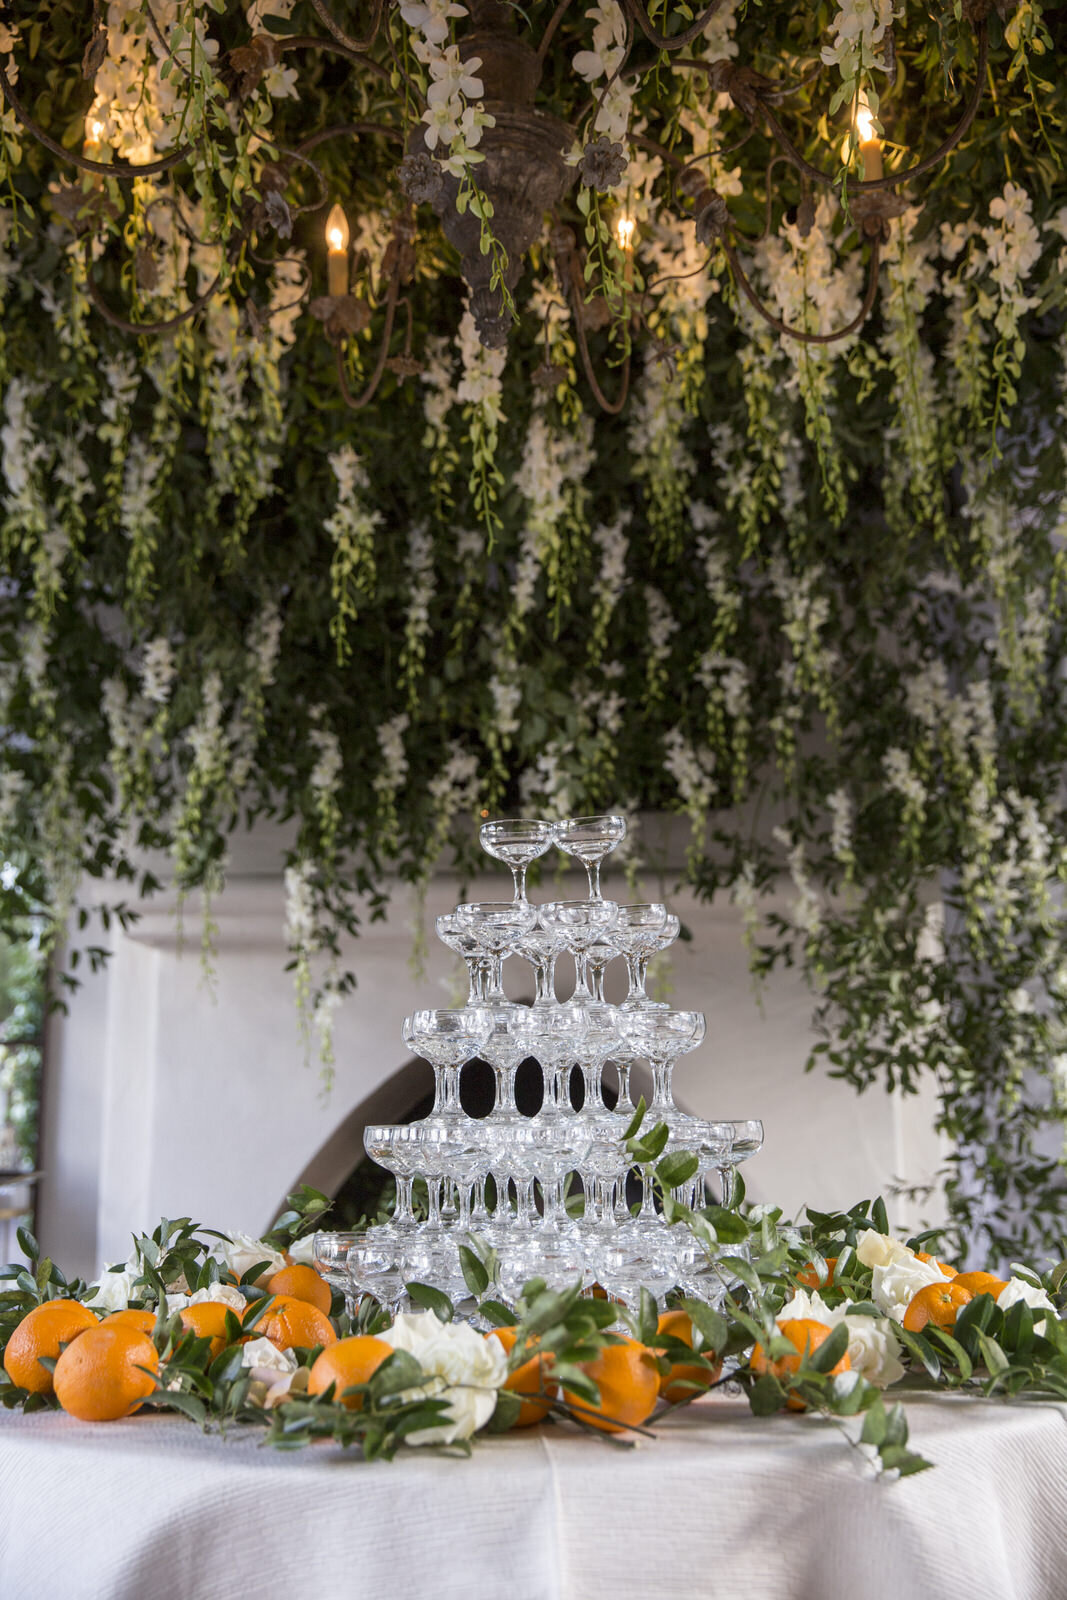 Orchid installation with oranges and styled blooms for the champagne presentation. Houston, Texas wedding with Jennifer Kaldis of Keely Thorne Events. Maxit Flower Design.